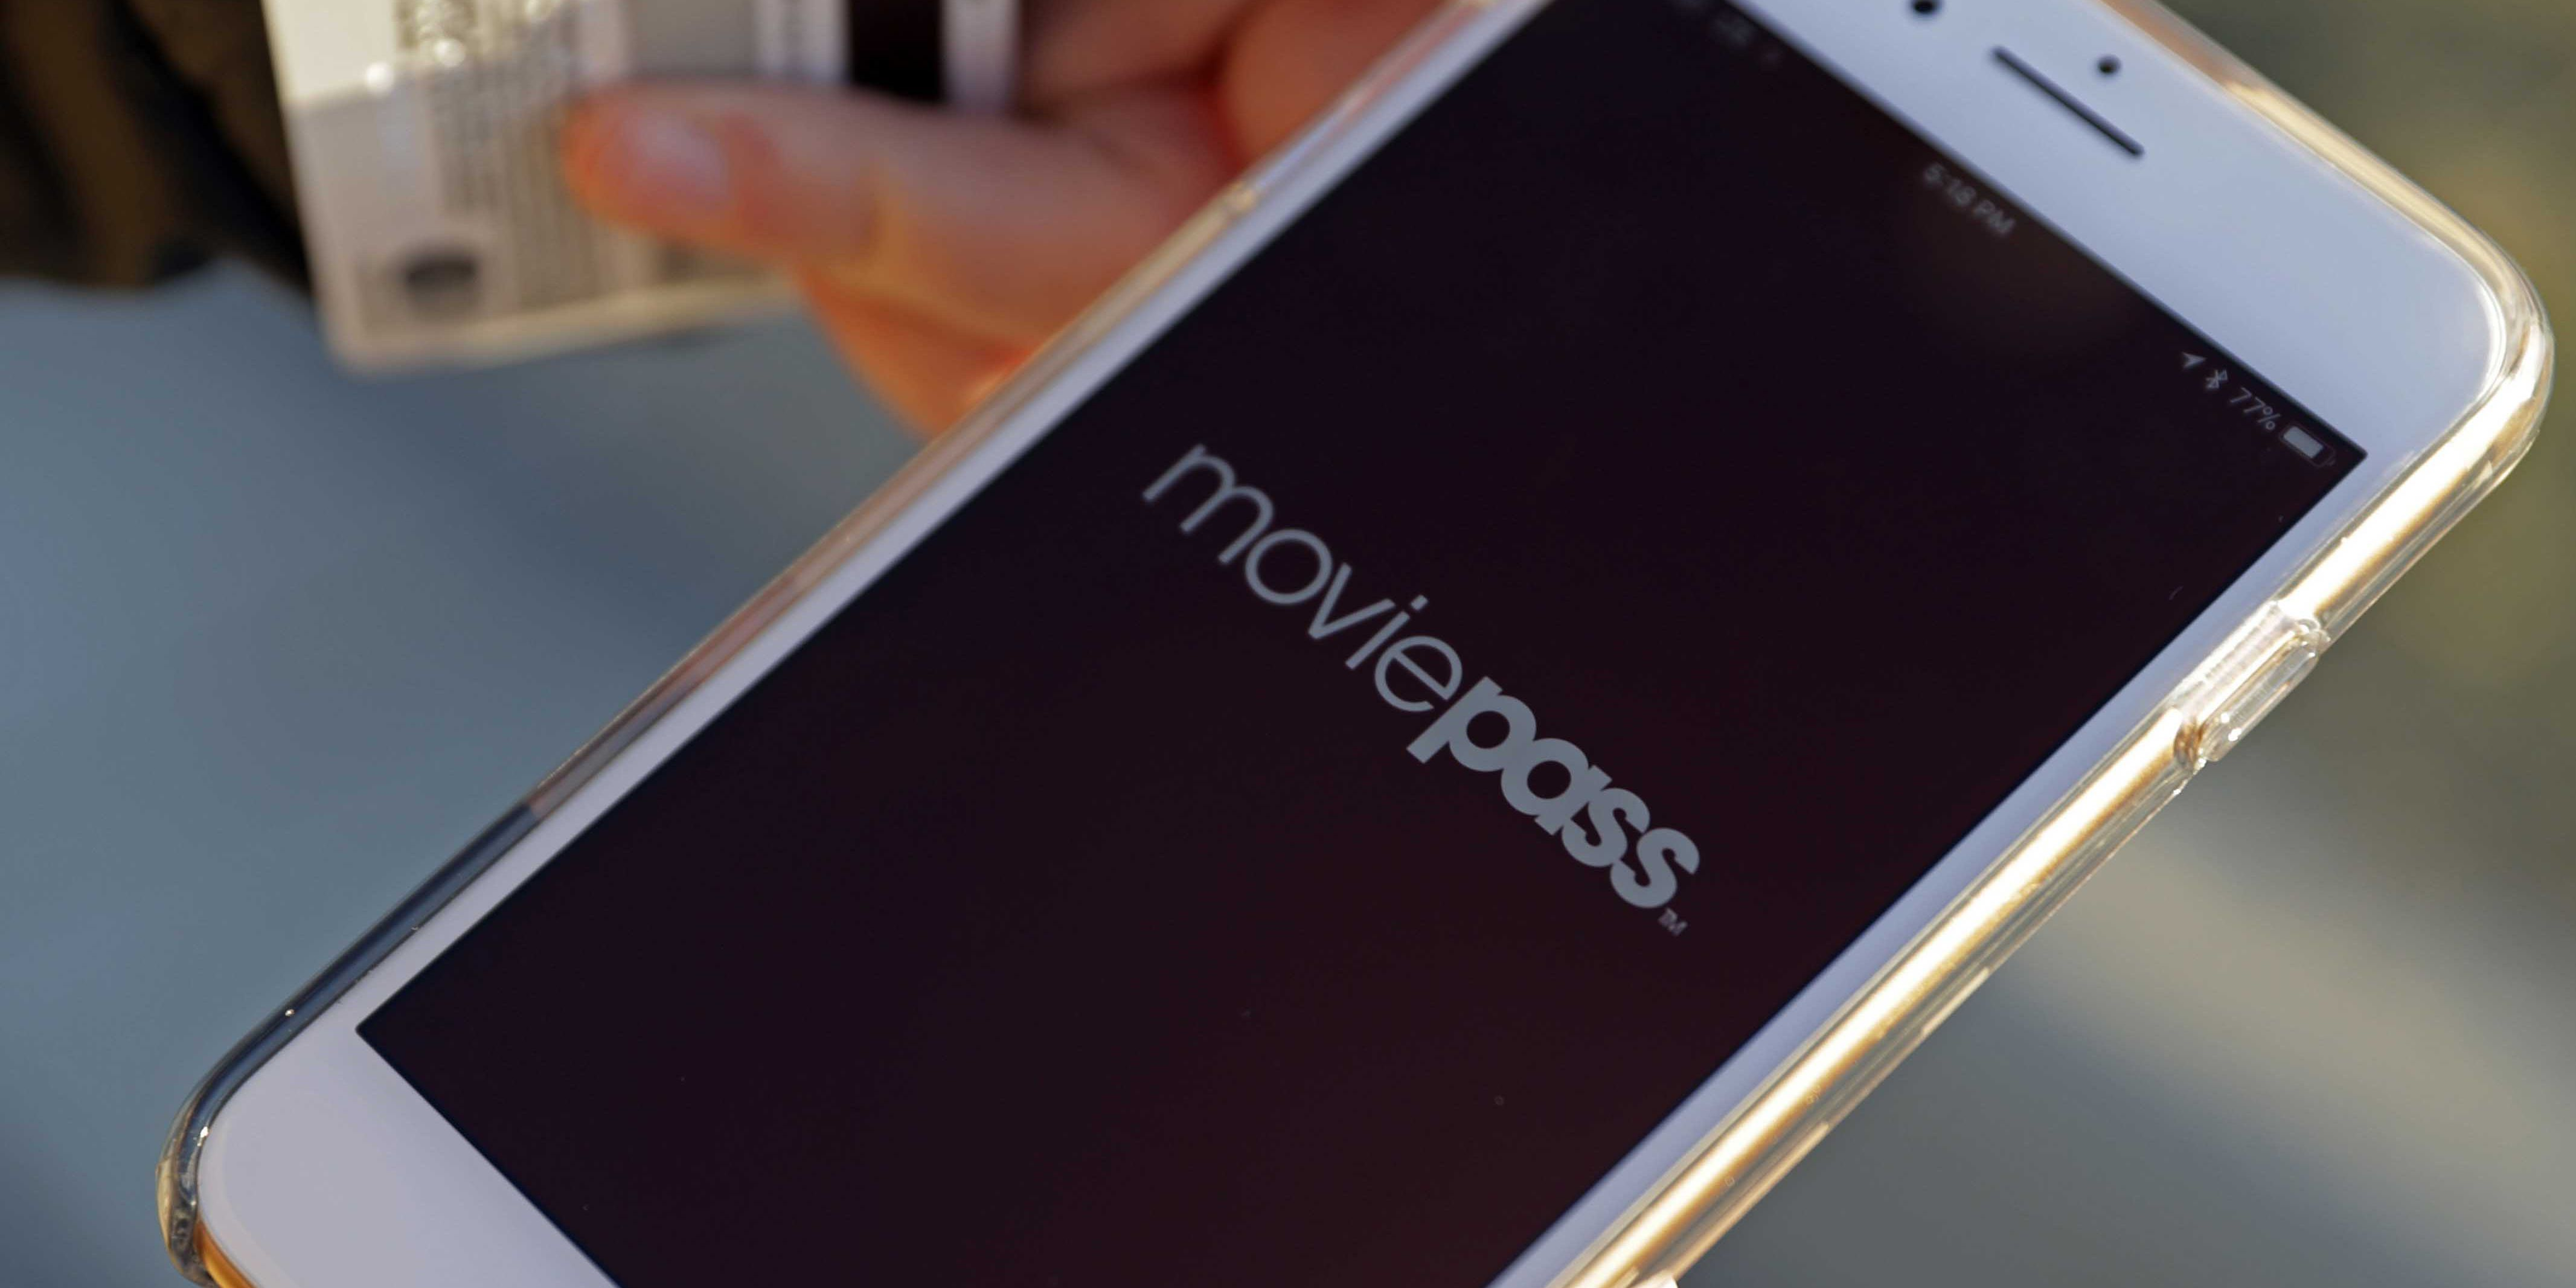 MoviePass brings back 'uncapped' subscription plan, with a few catches